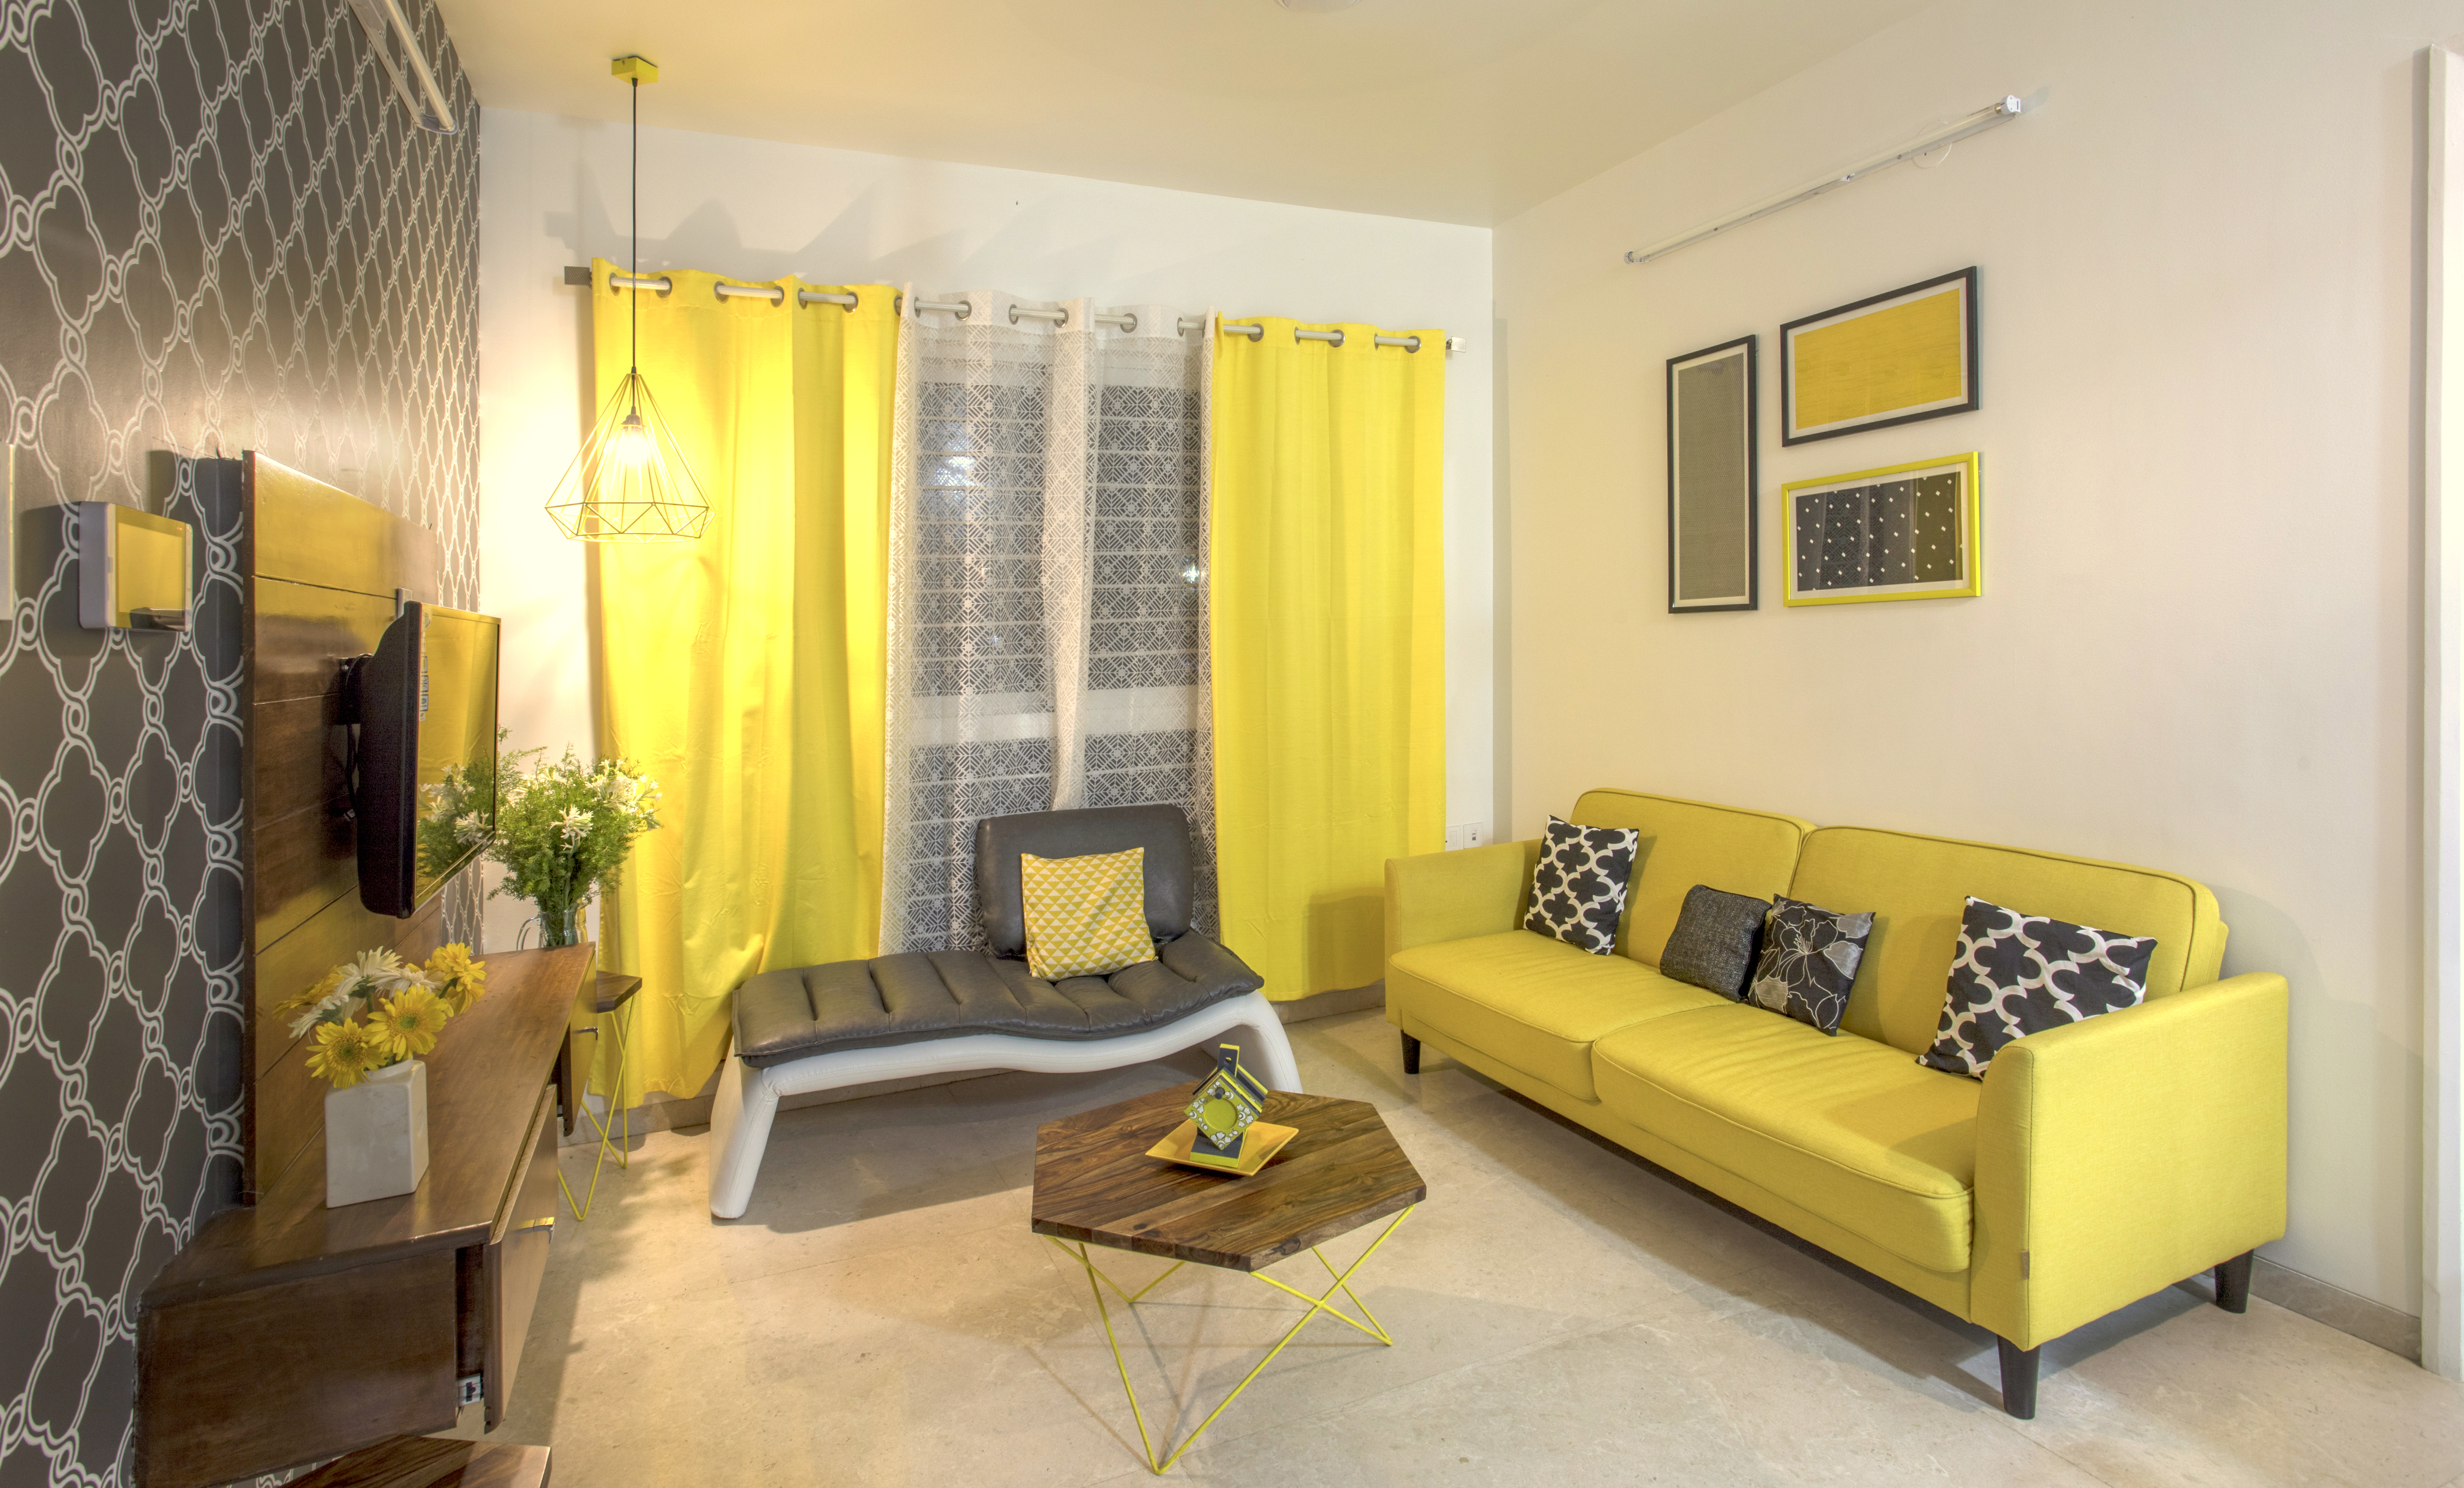 One Idea We Used Were Prints And Patterns On The Wall To Integrate The Yellow  Sofa Into The Living Room Without Making It Seem Out Of Place.